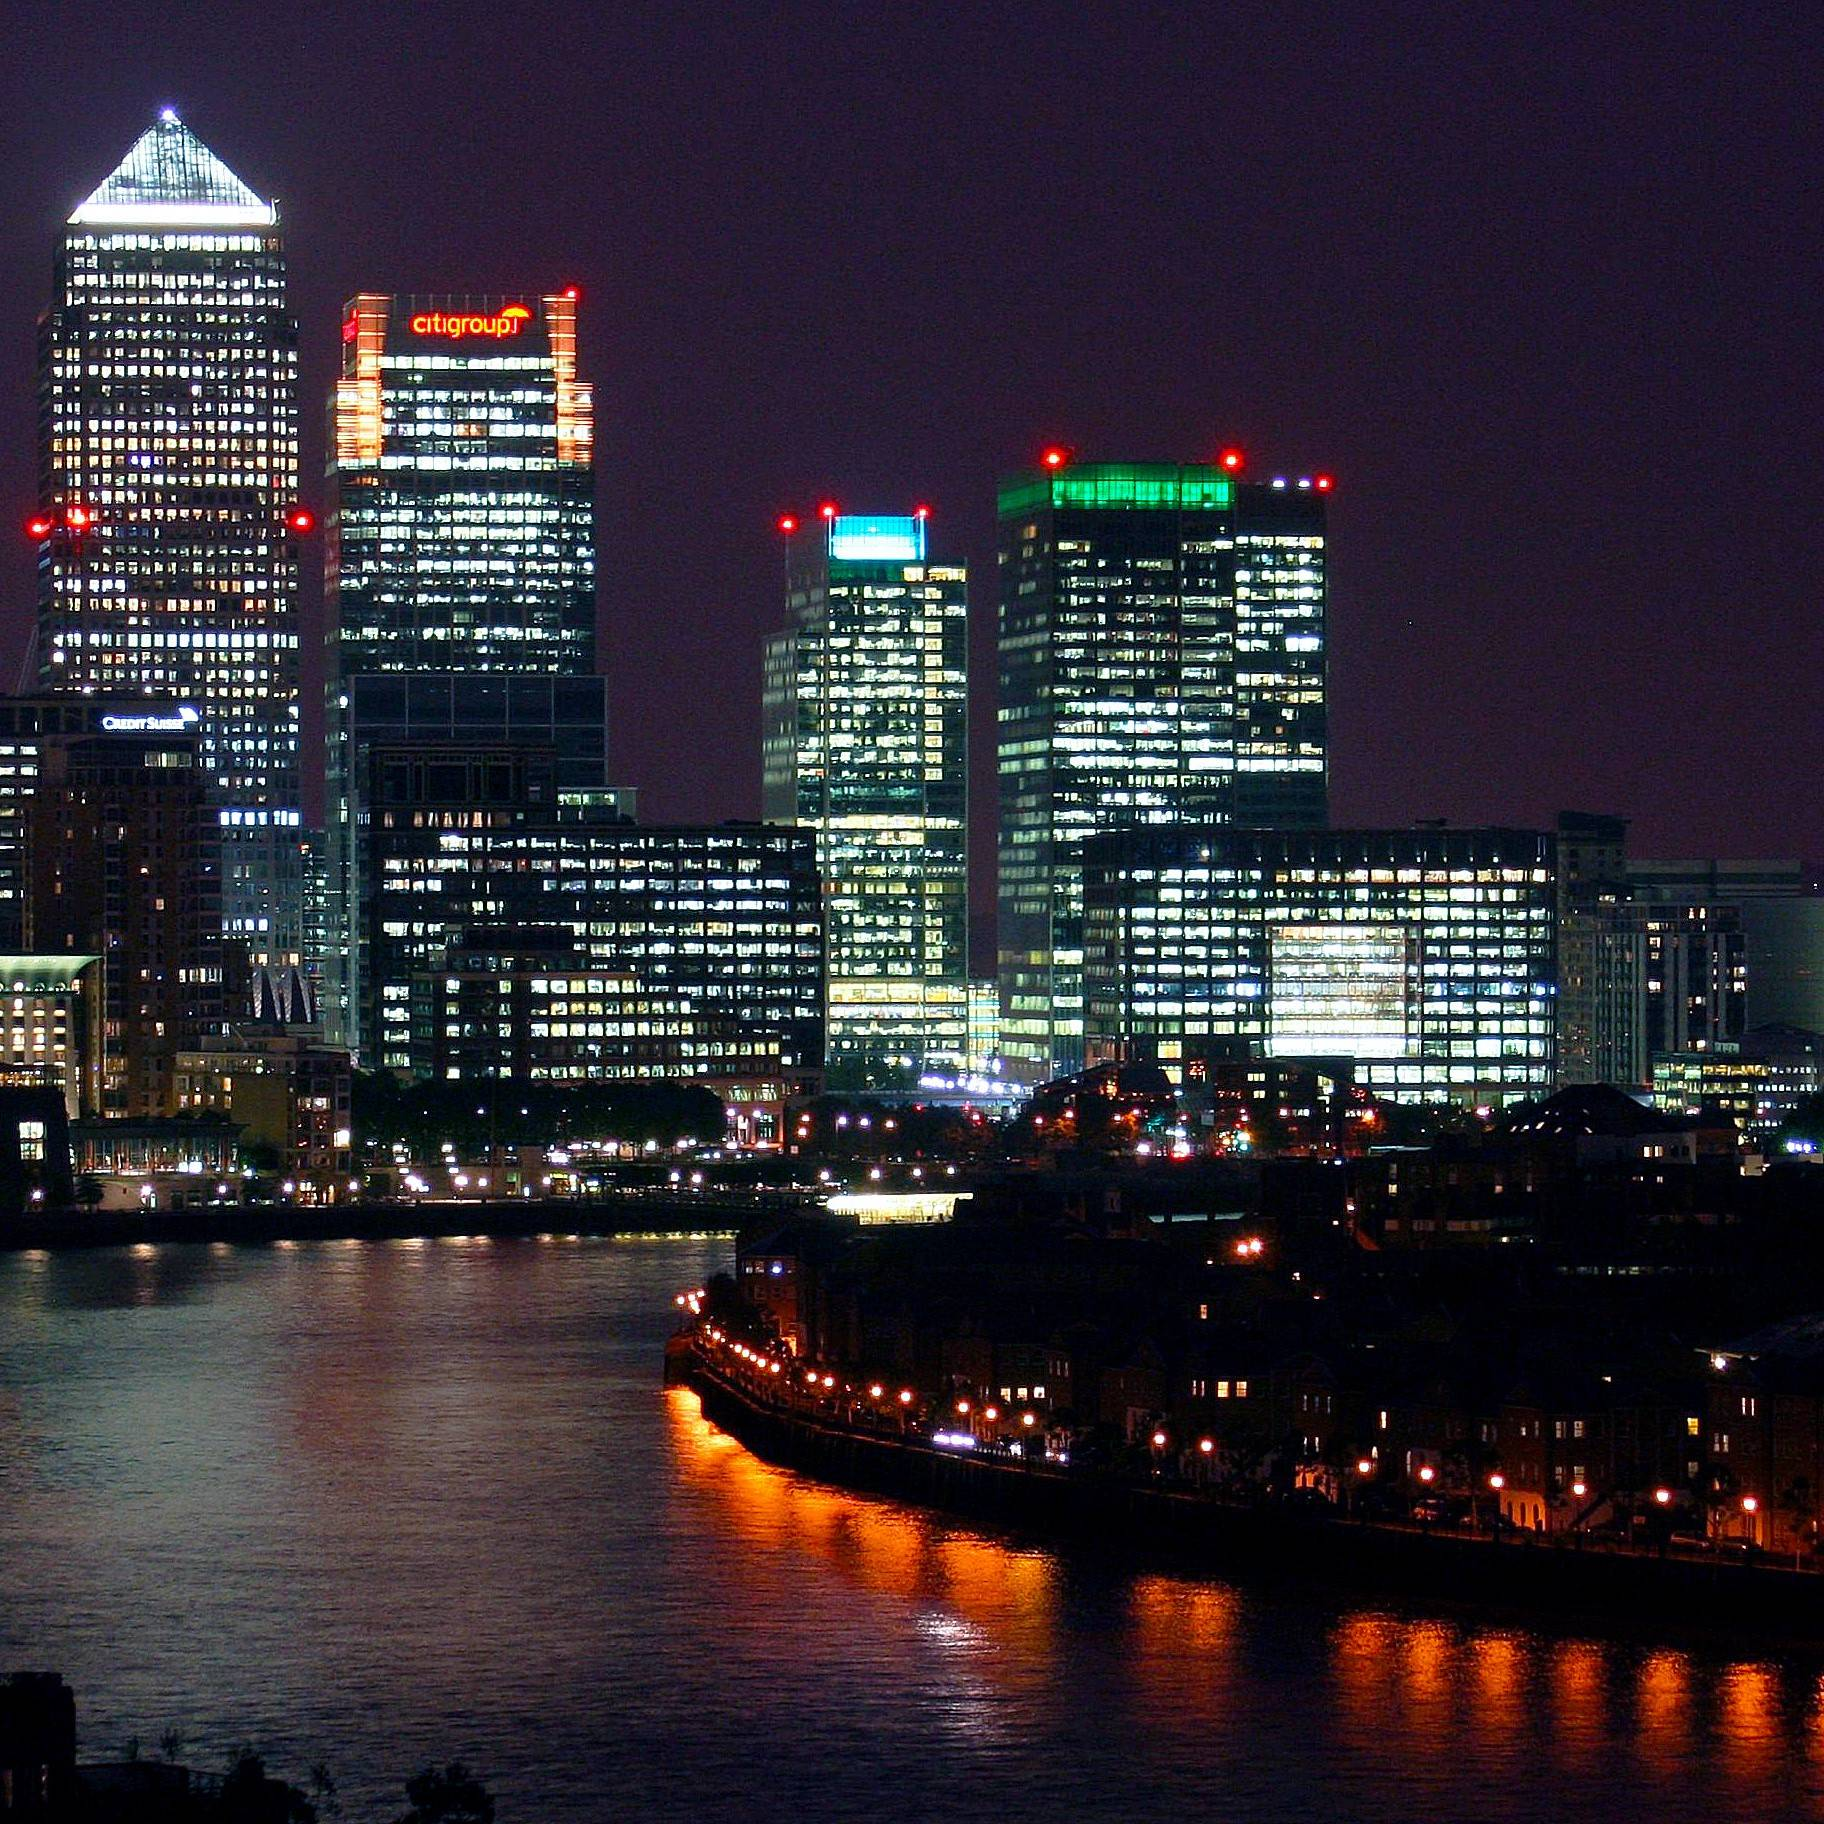 Commercial property uptake shows finance sector remains committed to London